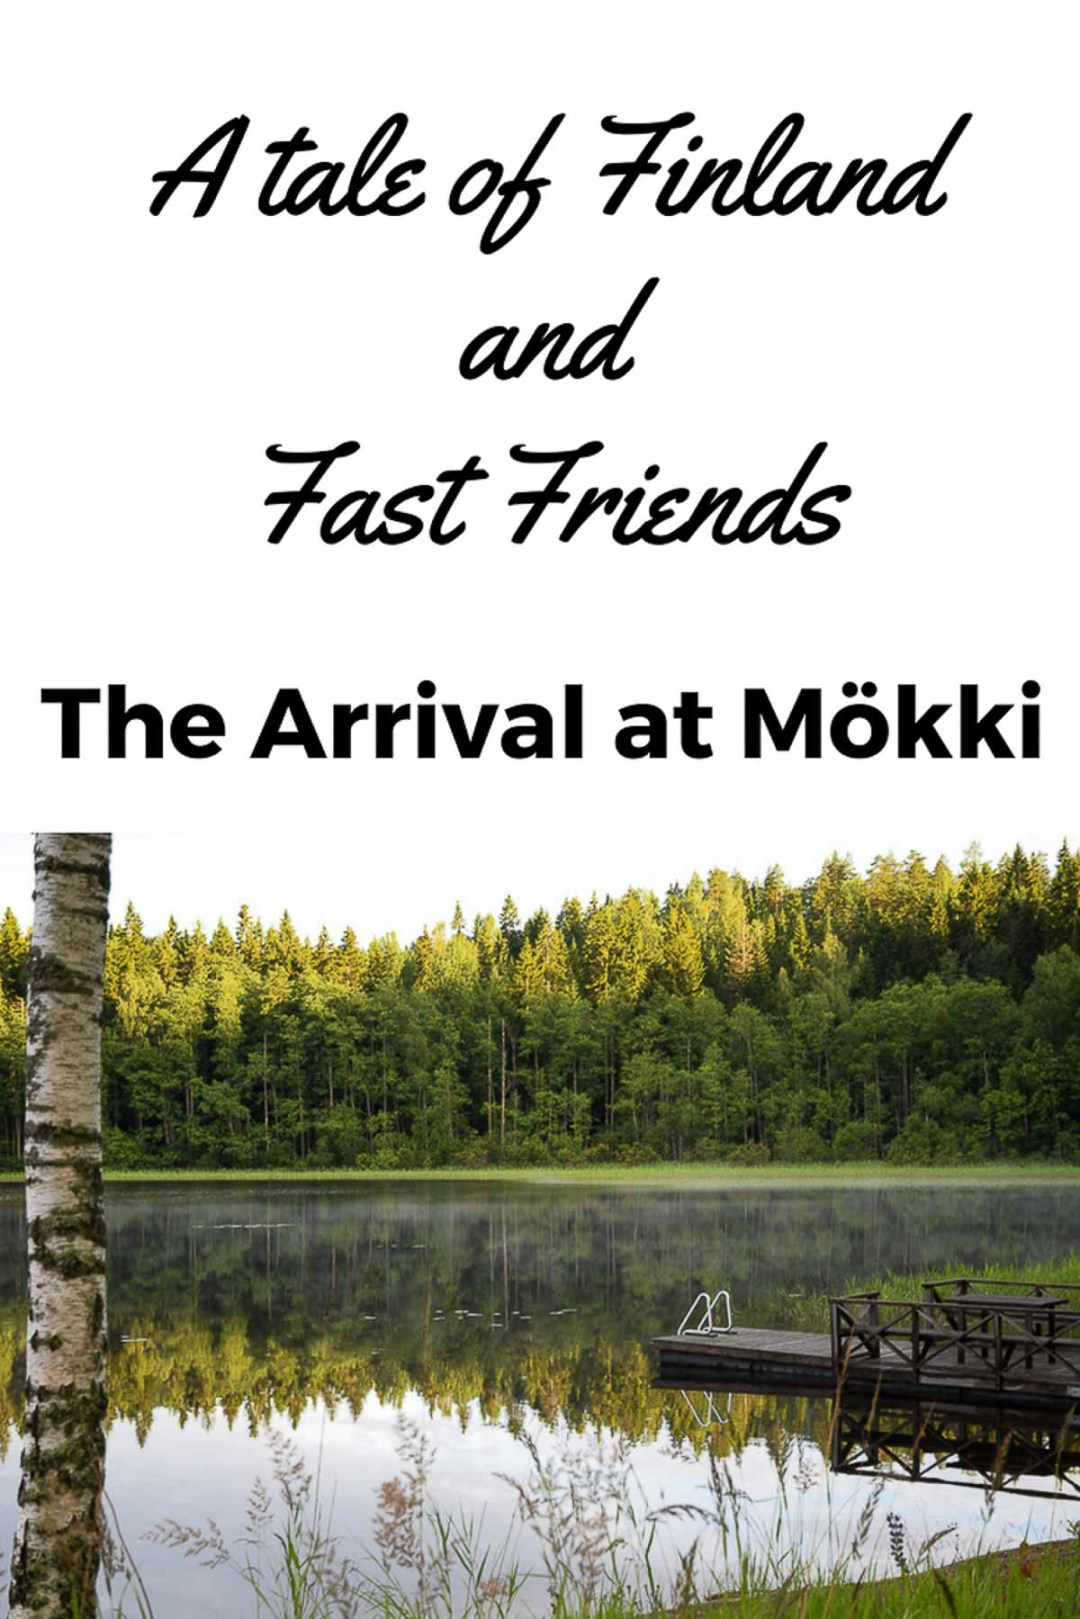 A blog post about arriving in Finland to spend a week with friends we only met once in Argentina.